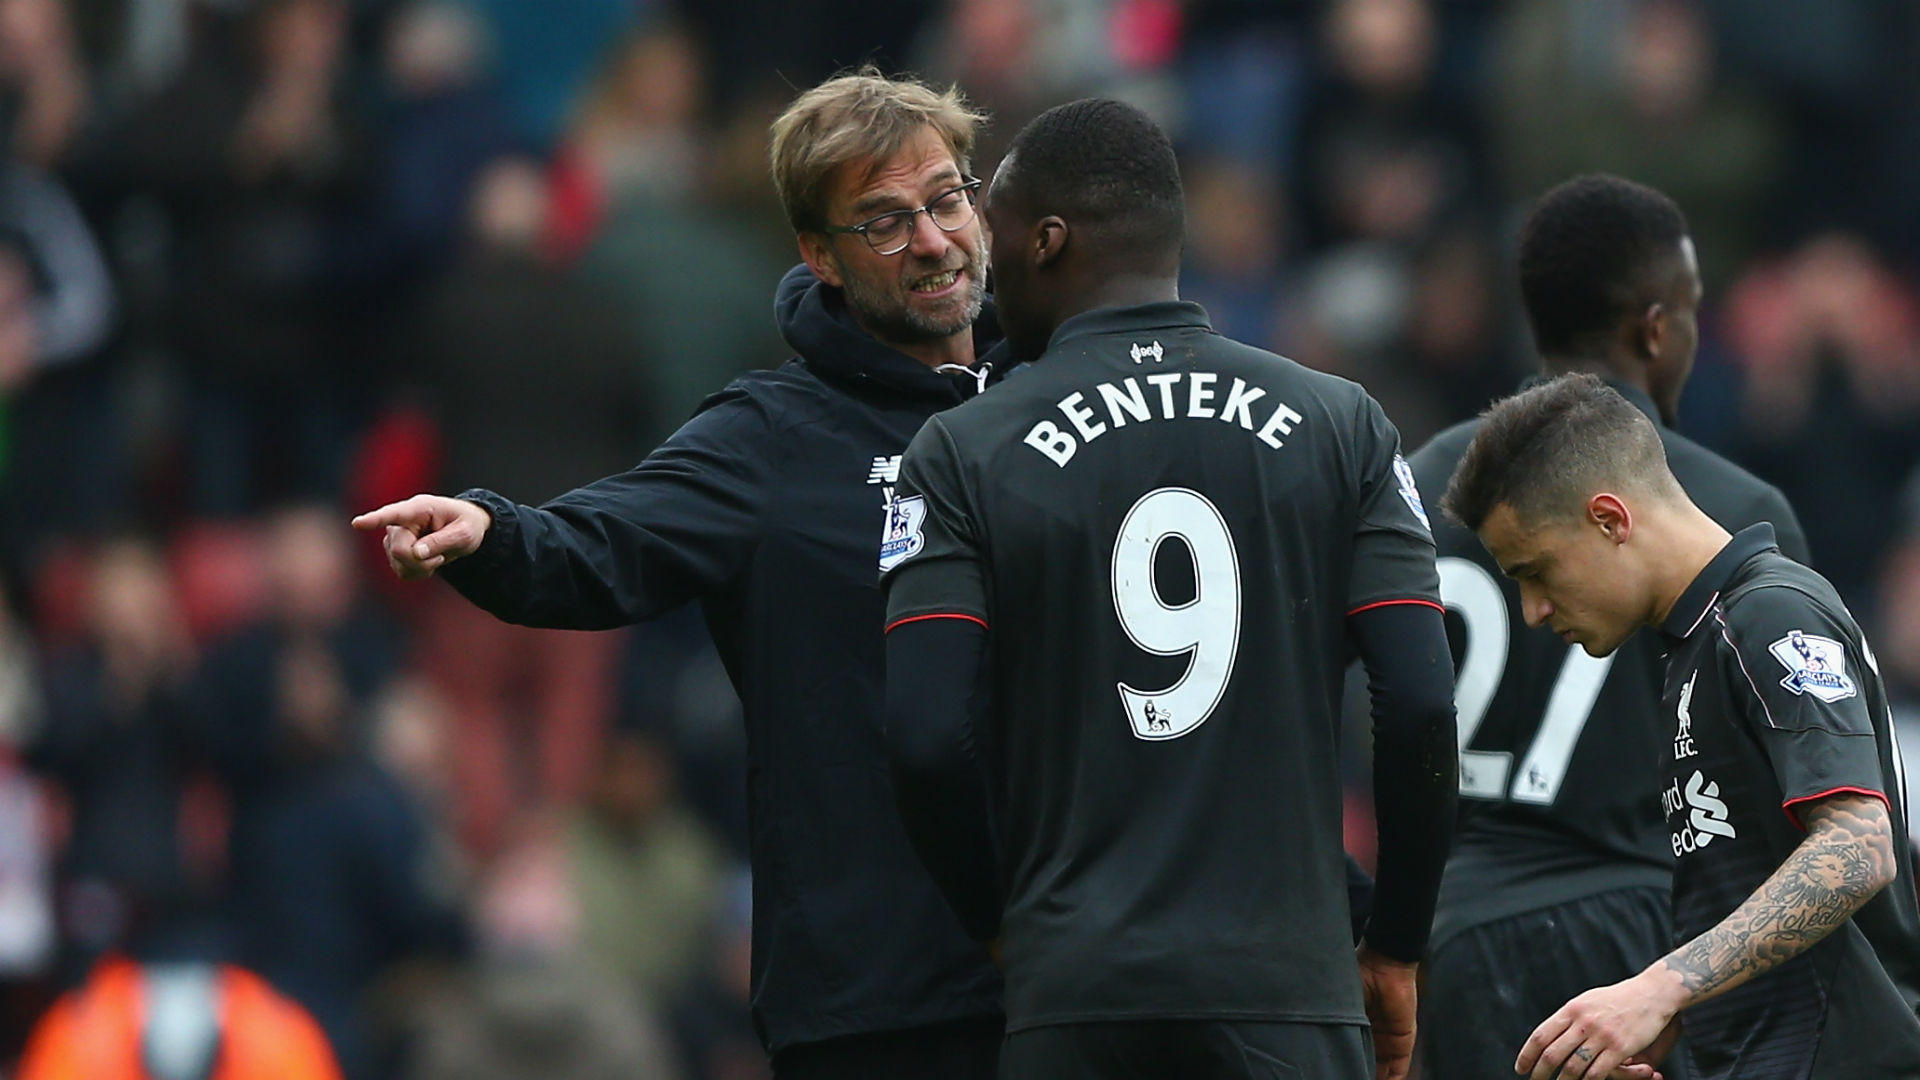 Crystal Palace in talks to sign Christian Benteke from Liverpool 1920x1080